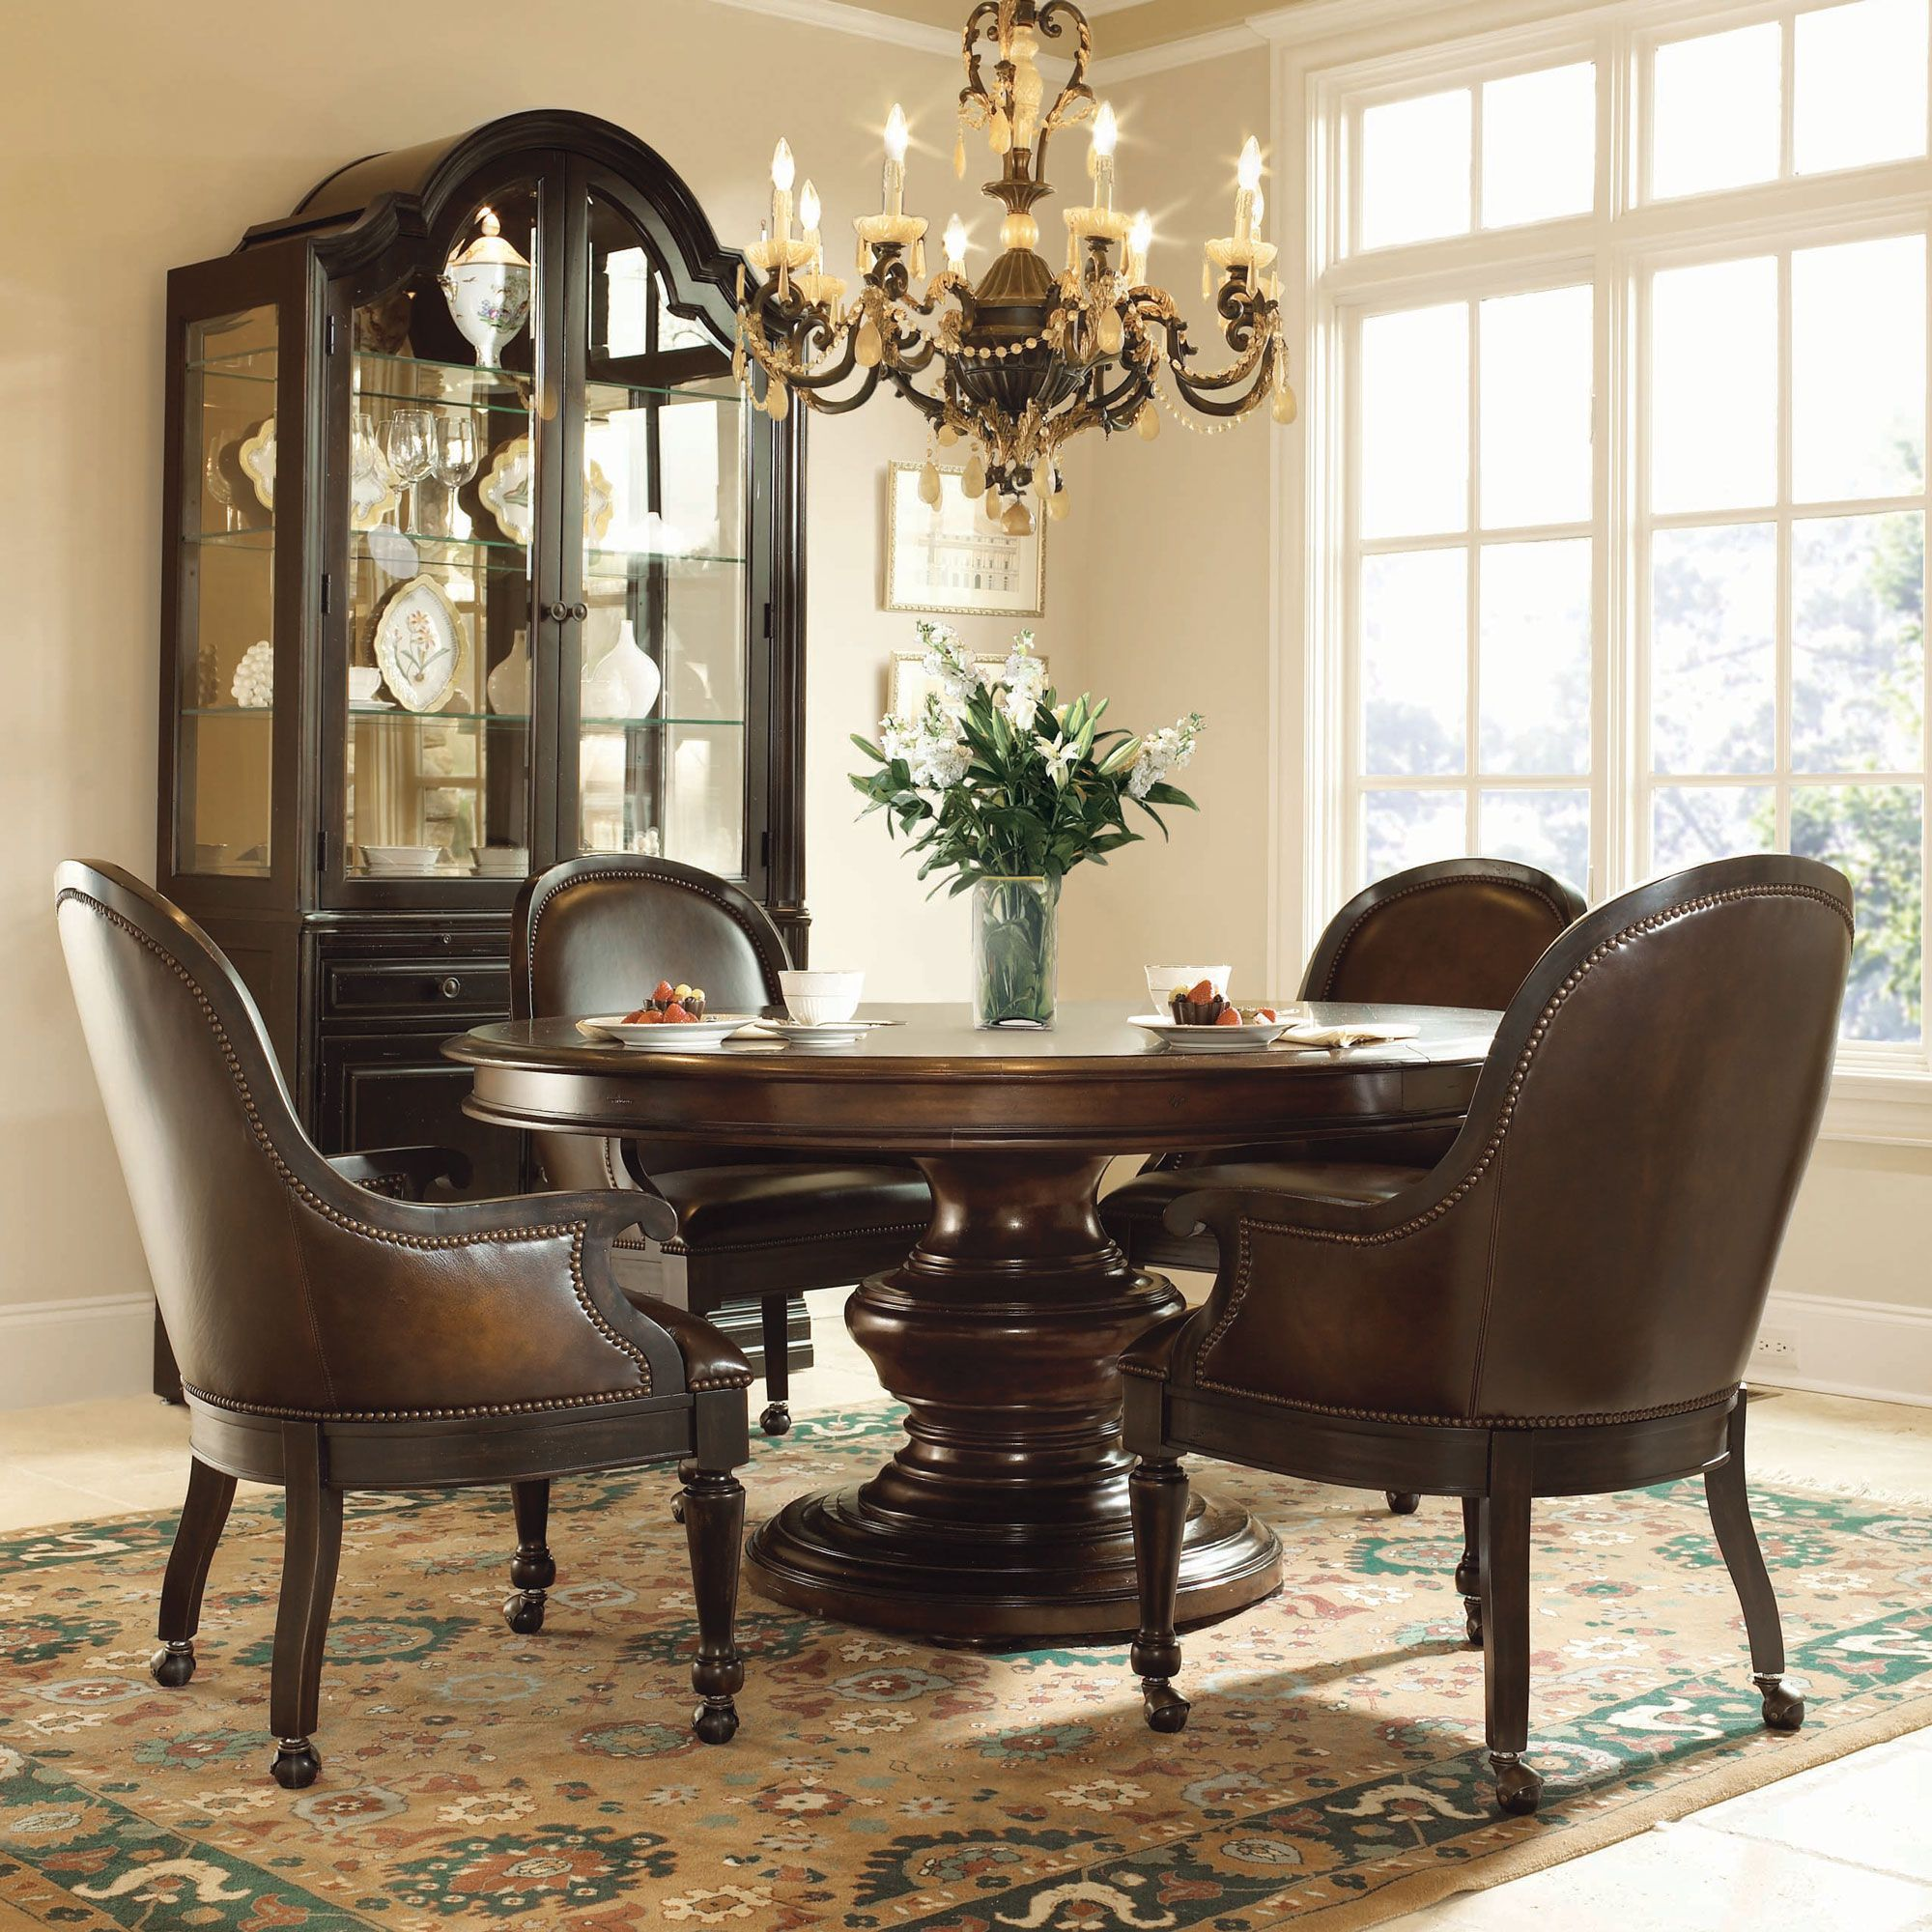 Poker Table Chairs With Casters Gold's Gym Roman Chair Bernhardt Normandie Manor 5pc Round Dining Room Set Large Game In Bark ...